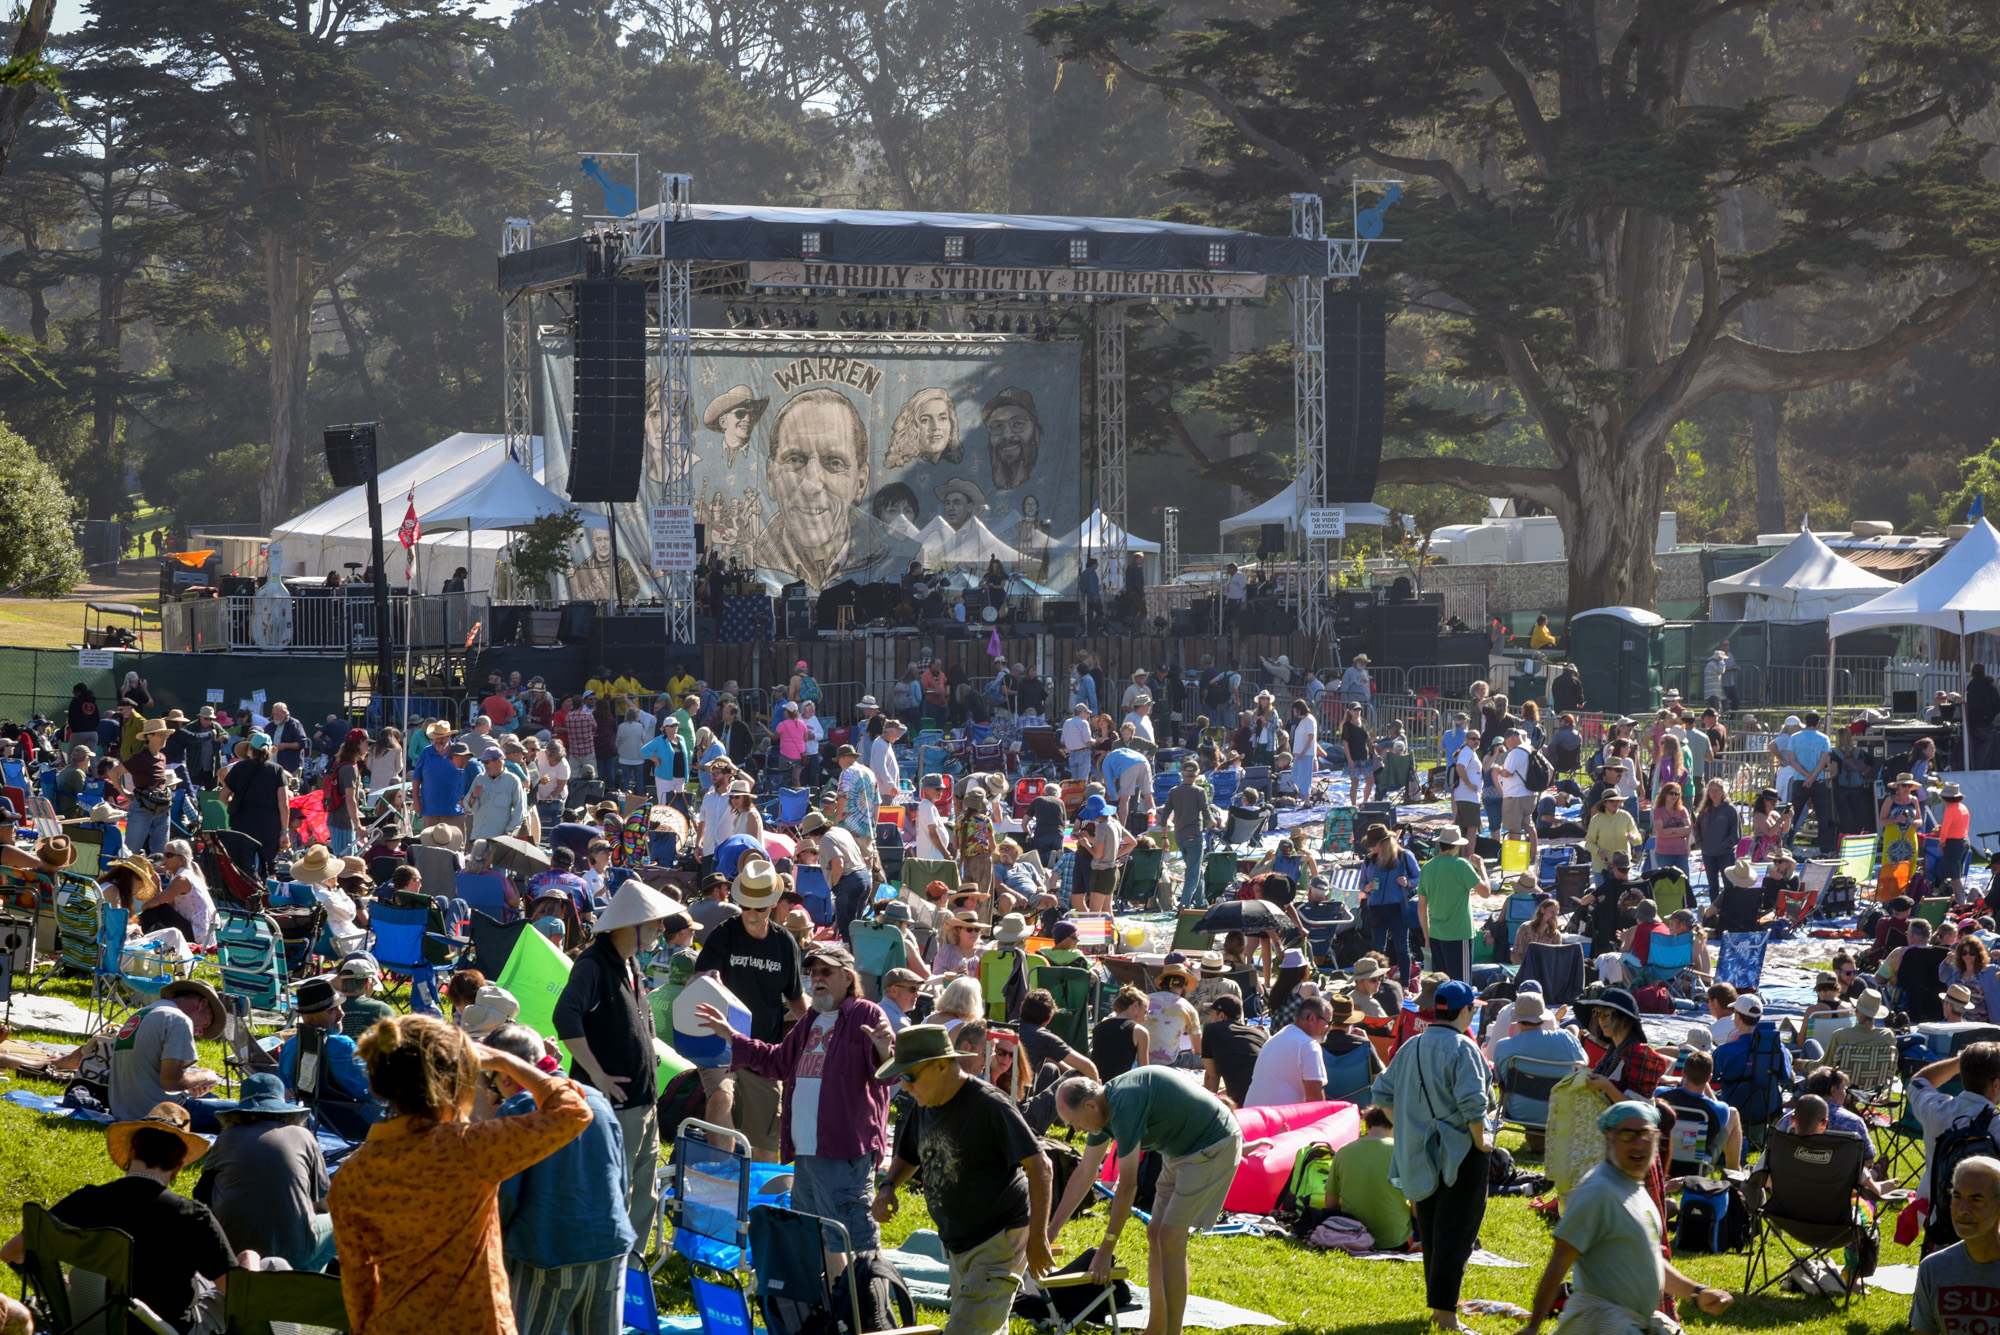 20-g-hardly-strictly-bluegrass-san-francisco-music